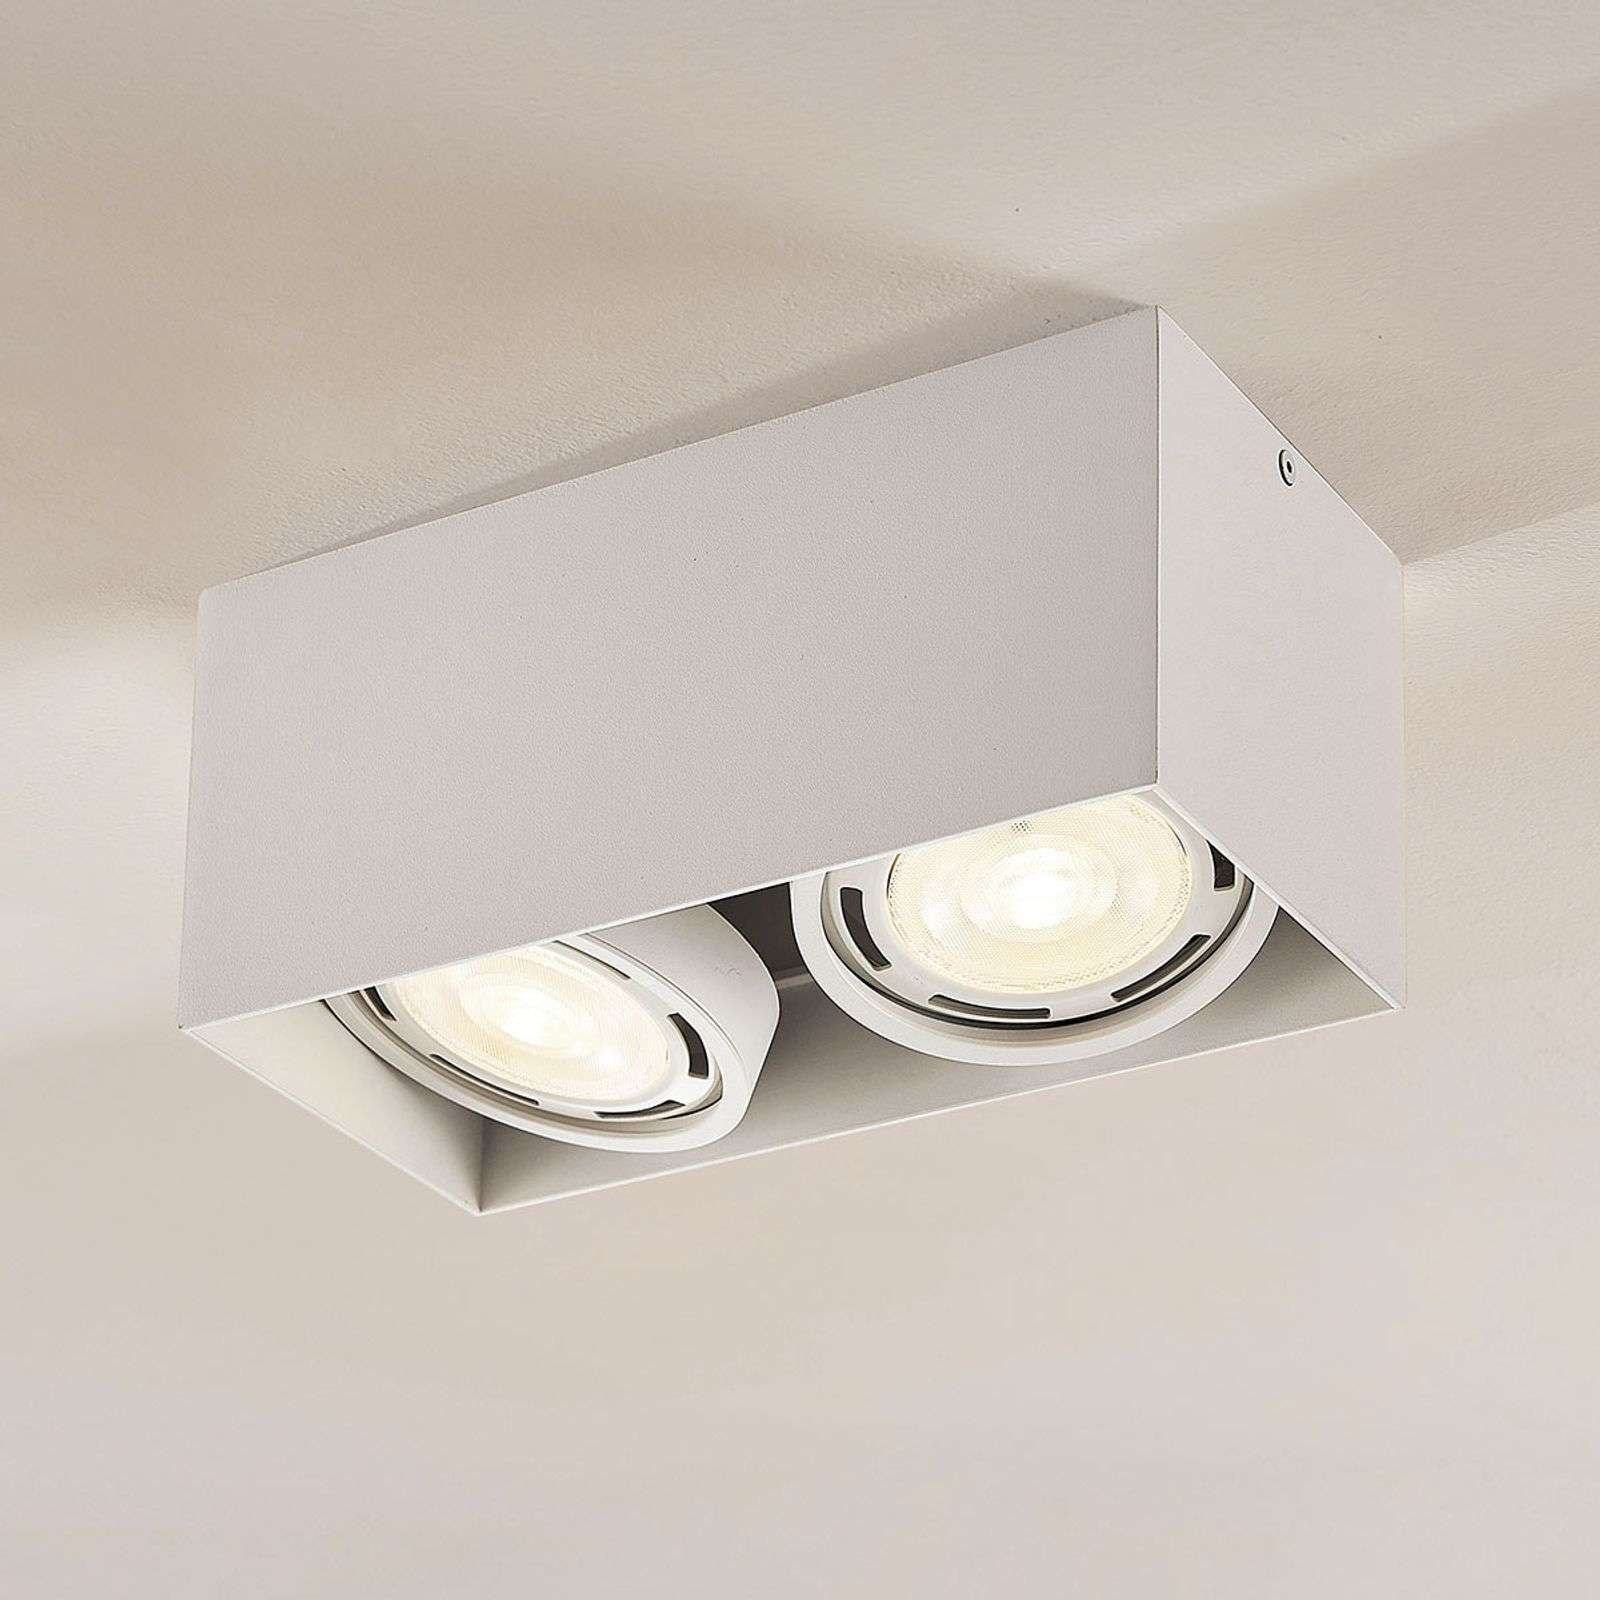 LED downlight Rosalie dimbaar hoekig 2-lamps wit